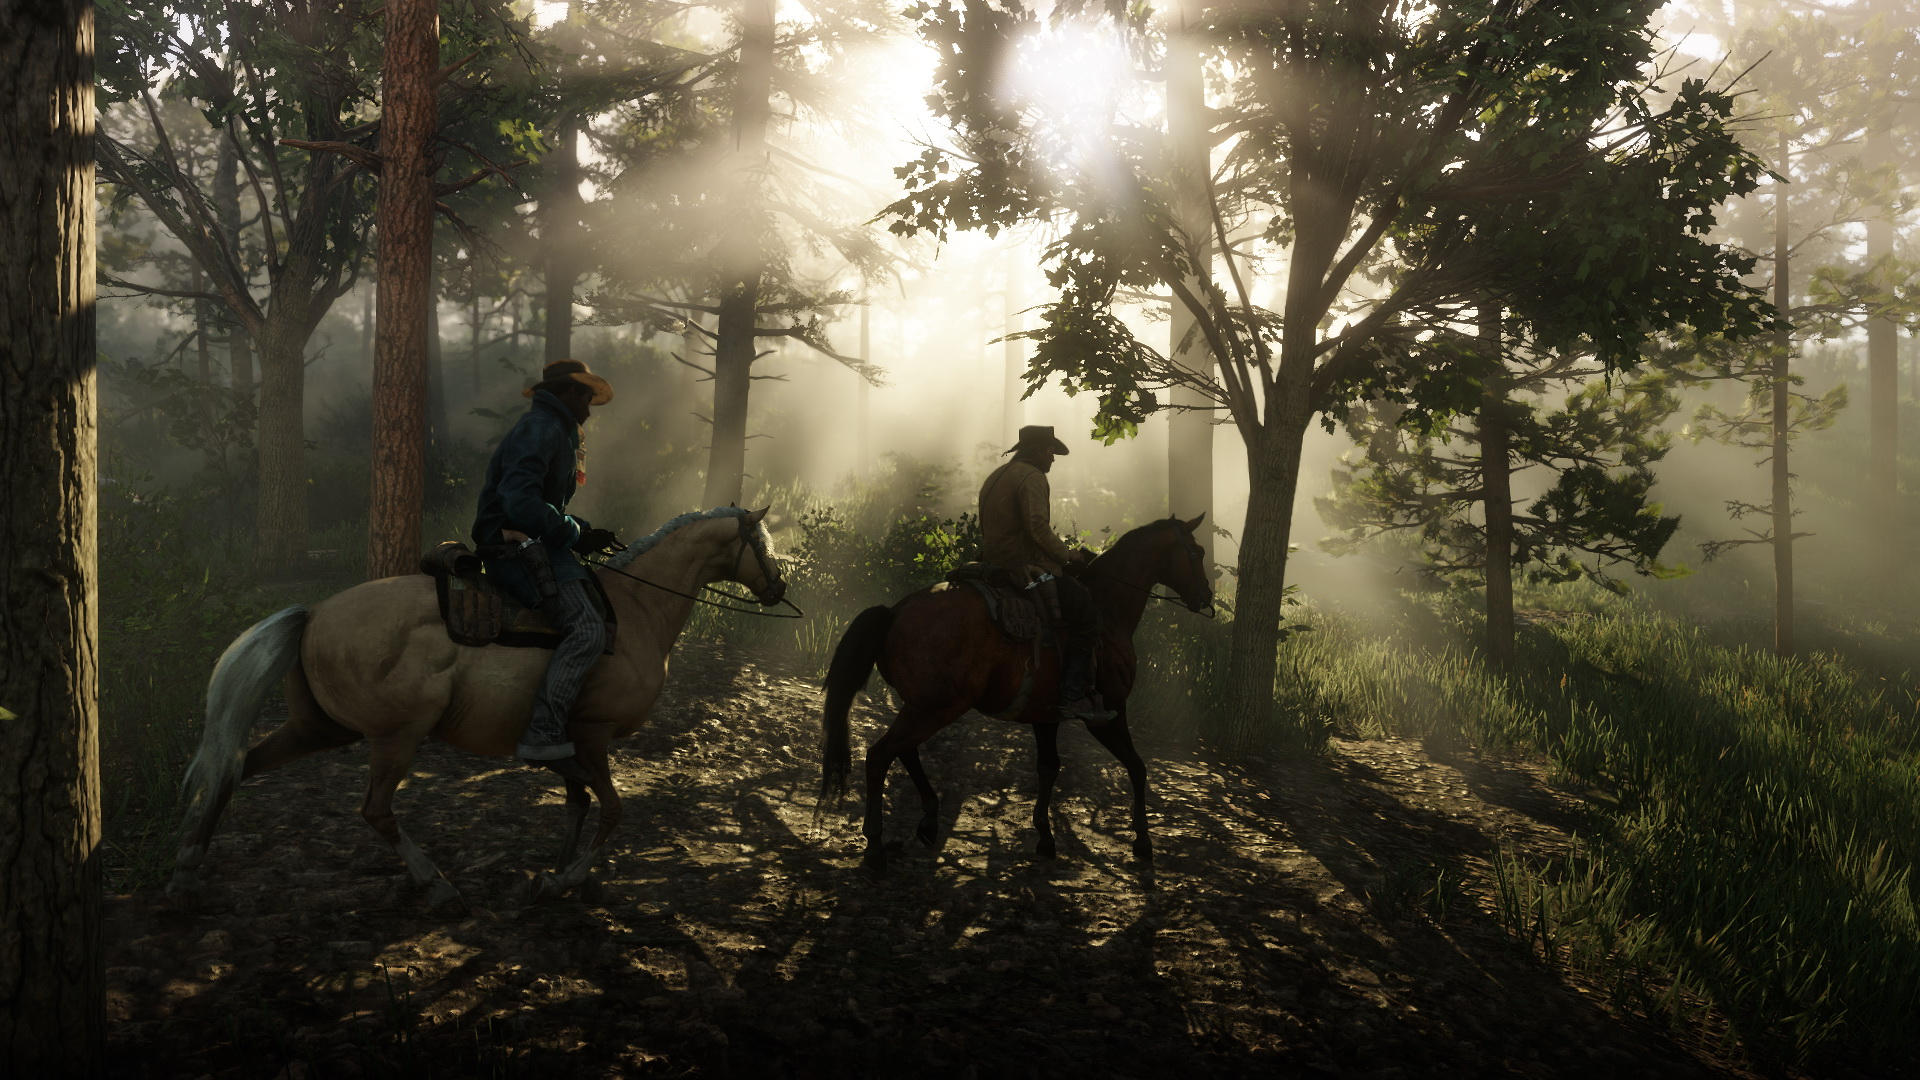 Schöne Open World: Neue Screenshots zu Red Dead Redemption 2. Bilderquelle: Rockstar Games